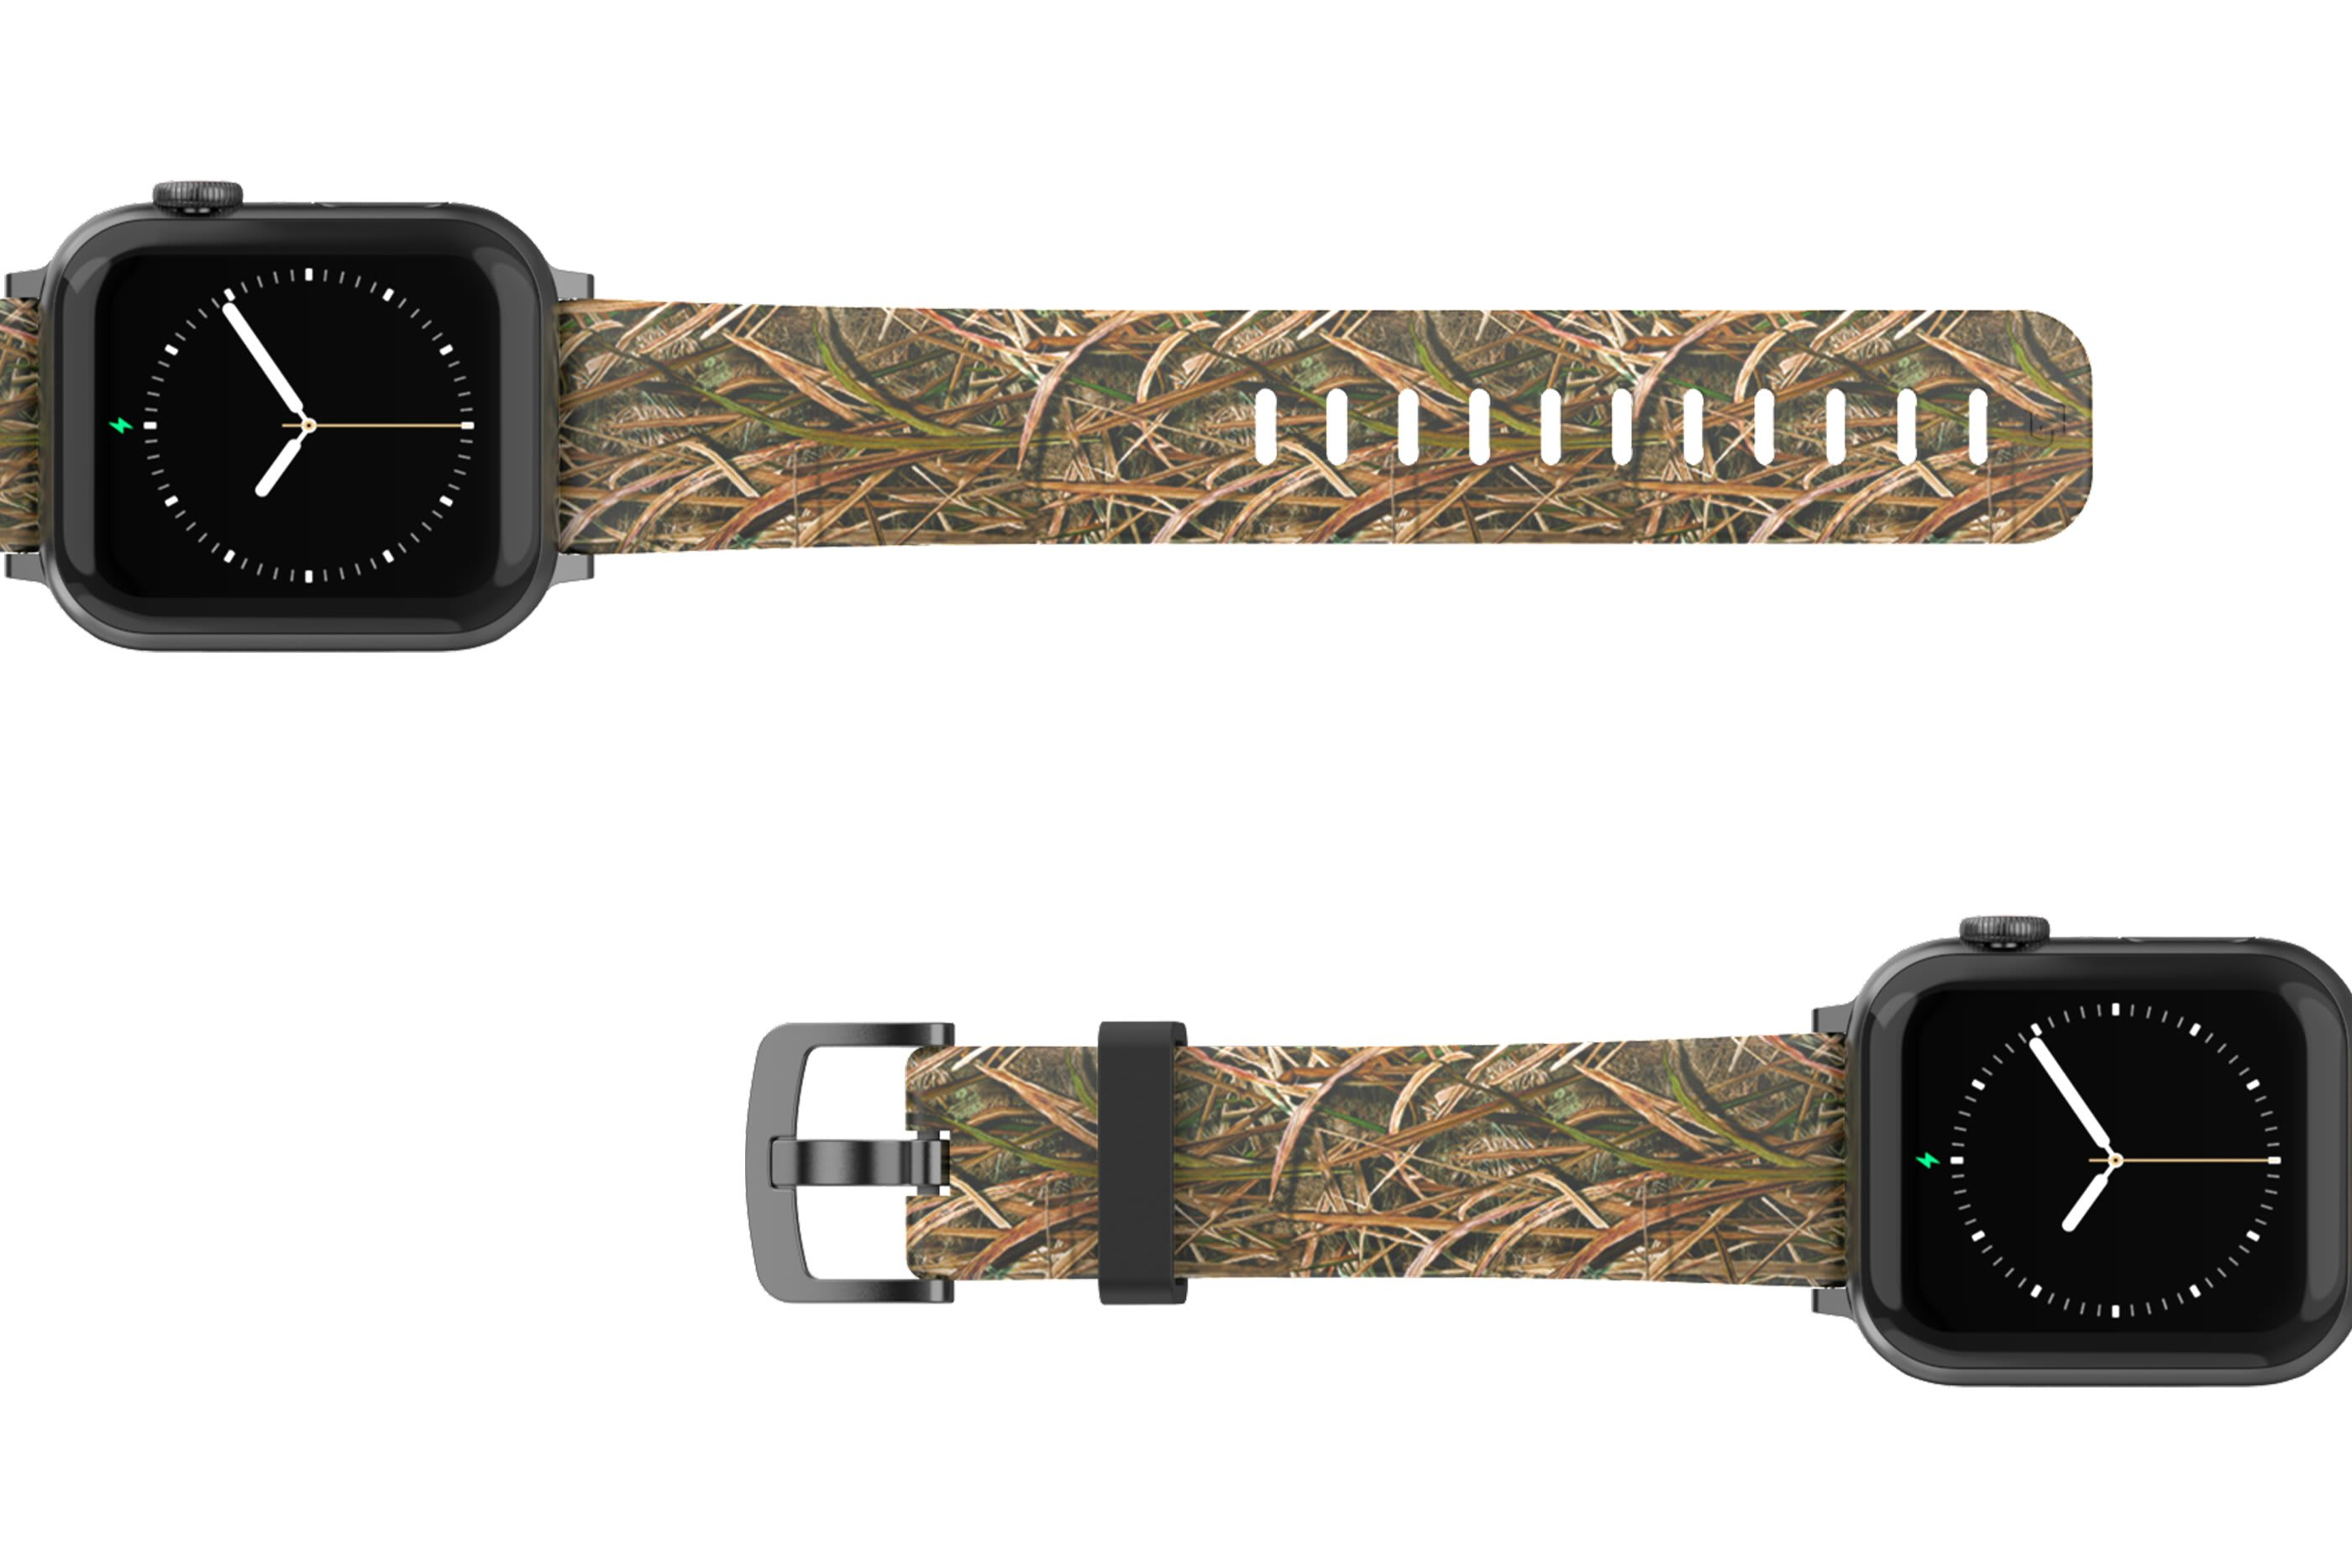 Mossy Oak Blades Apple Watch Band with gray hardware viewed top down